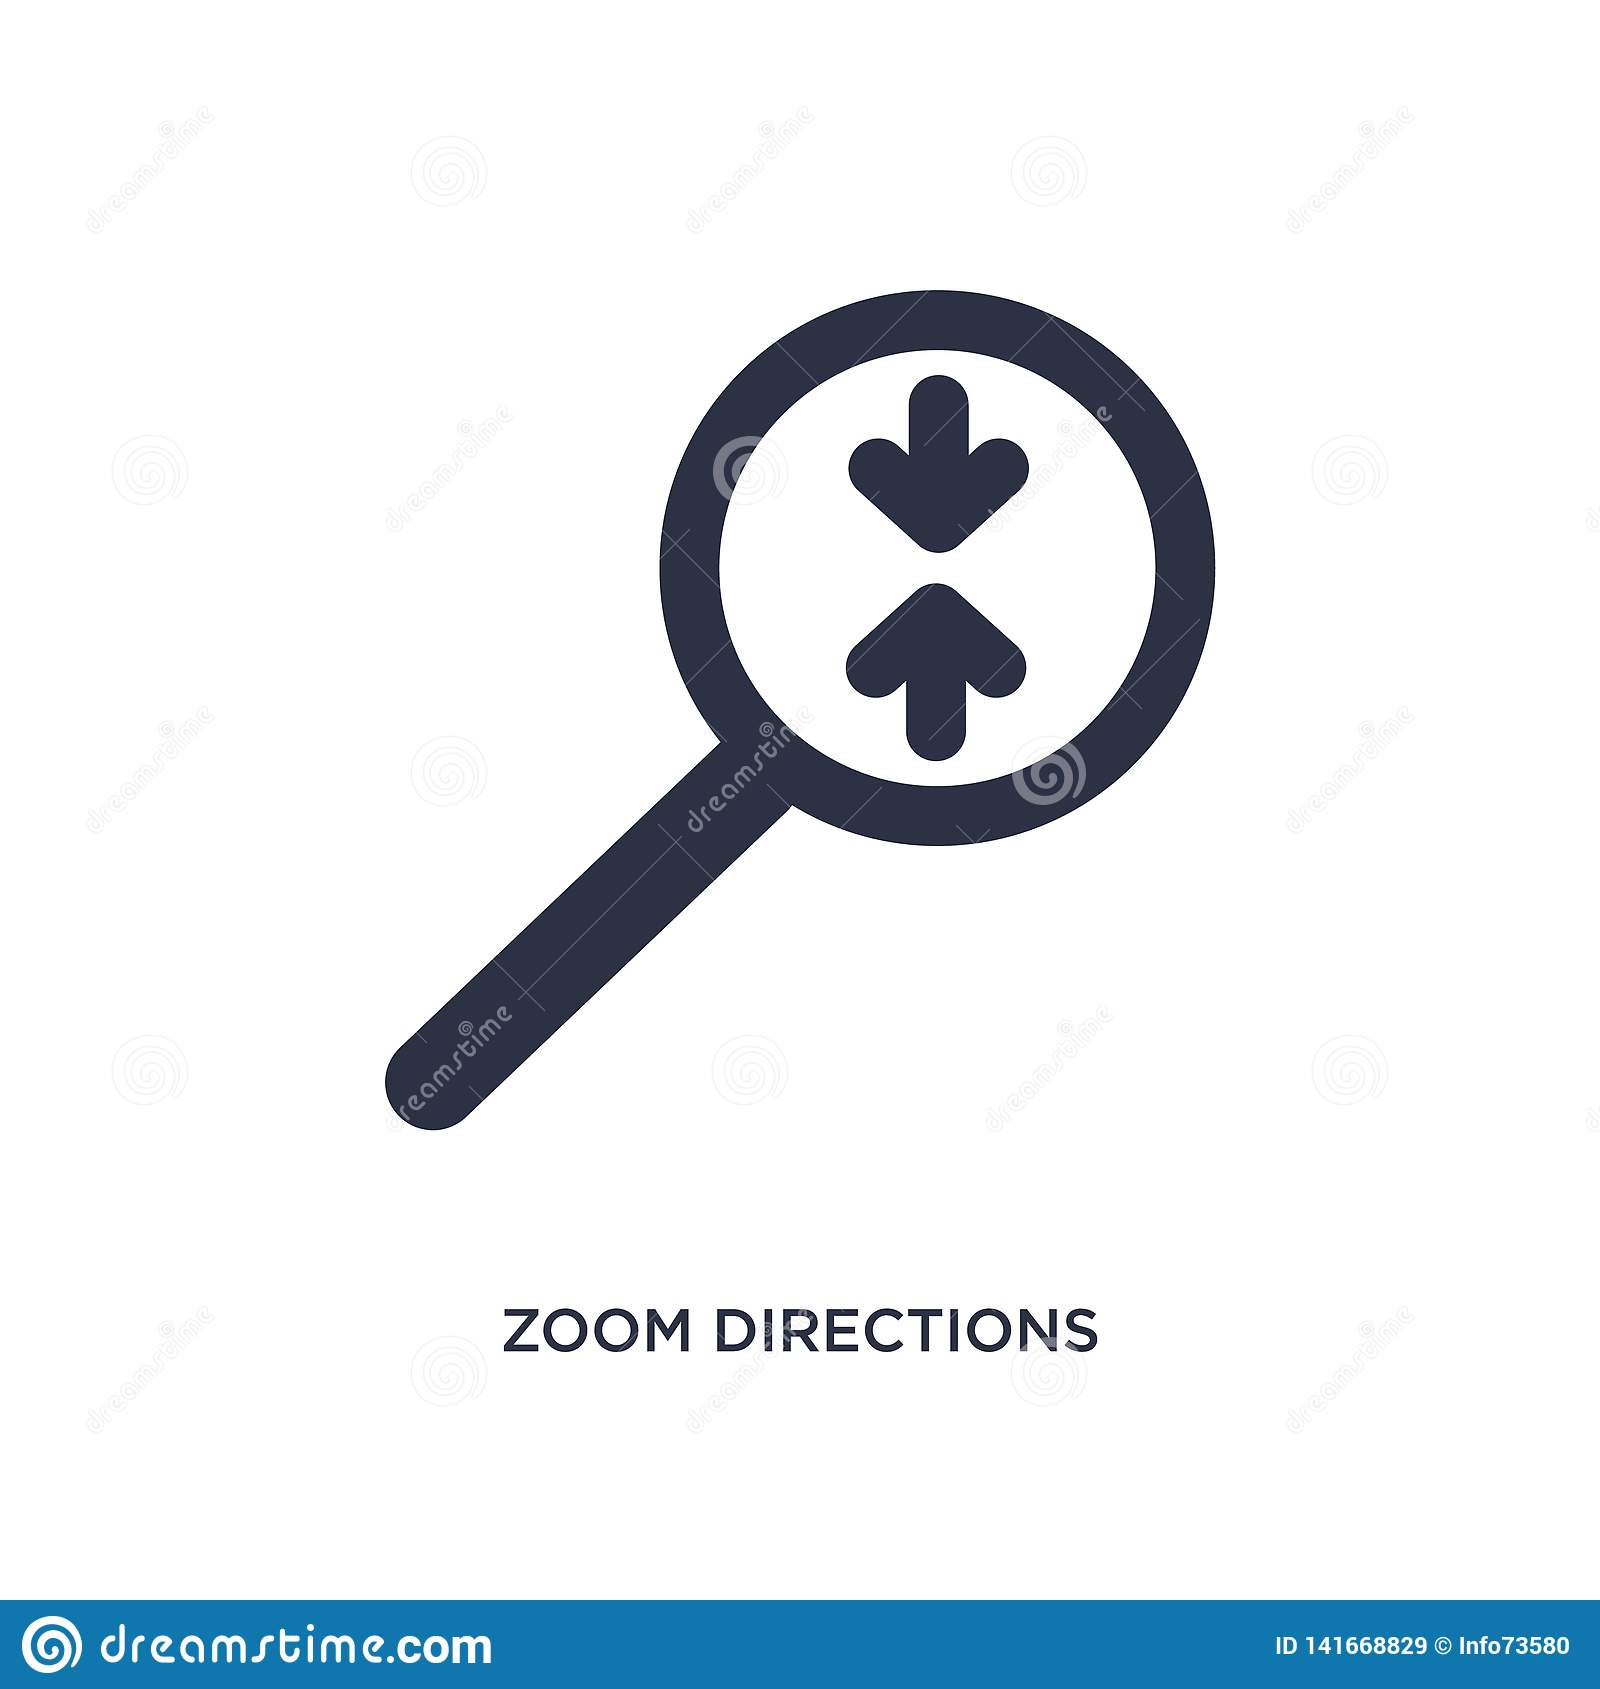 zoom directions icon on white background. Simple element illustration from arrows concept